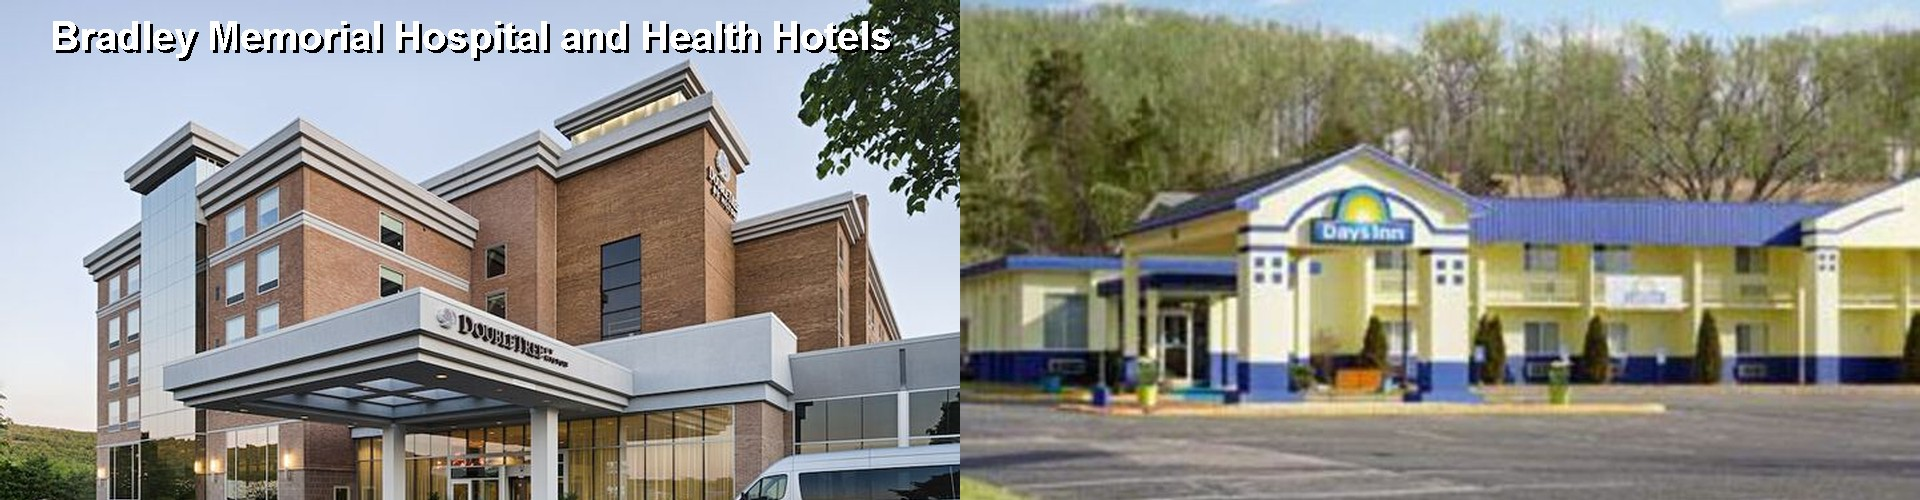 5 Best Hotels near Bradley Memorial Hospital and Health